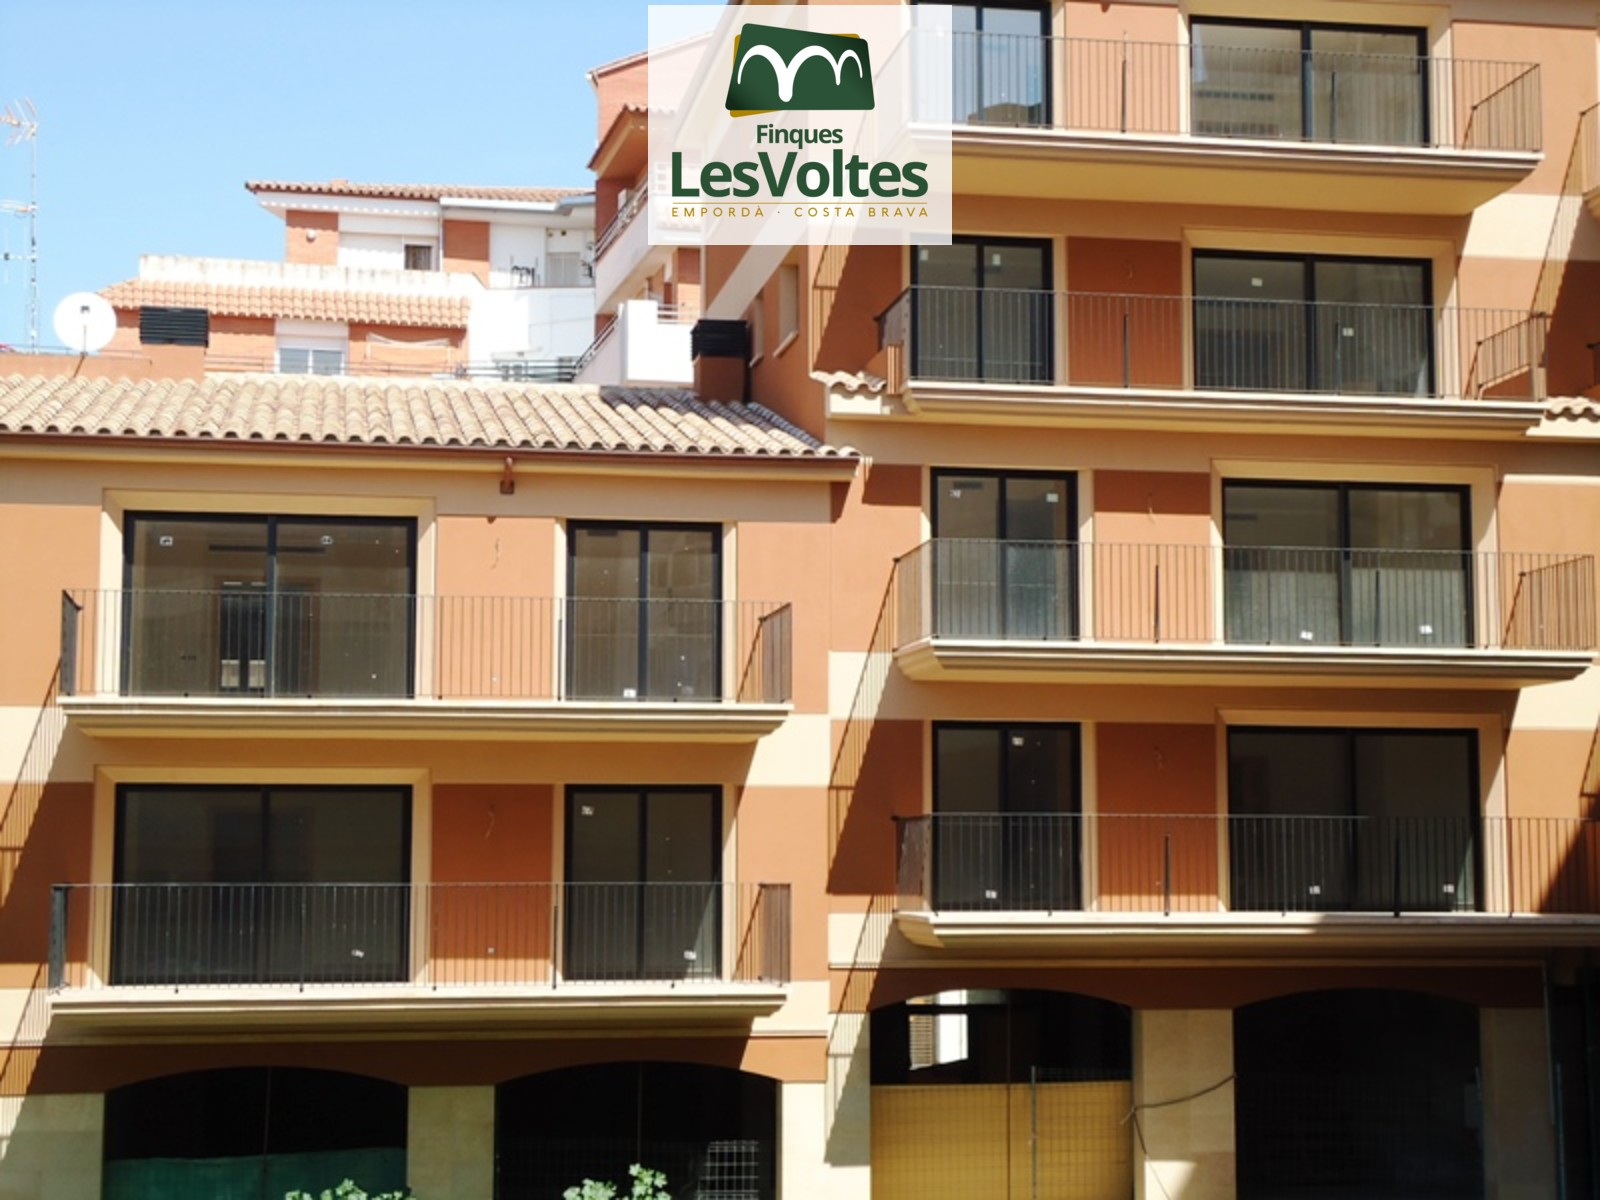 Parkings for sale in Palafrugell area